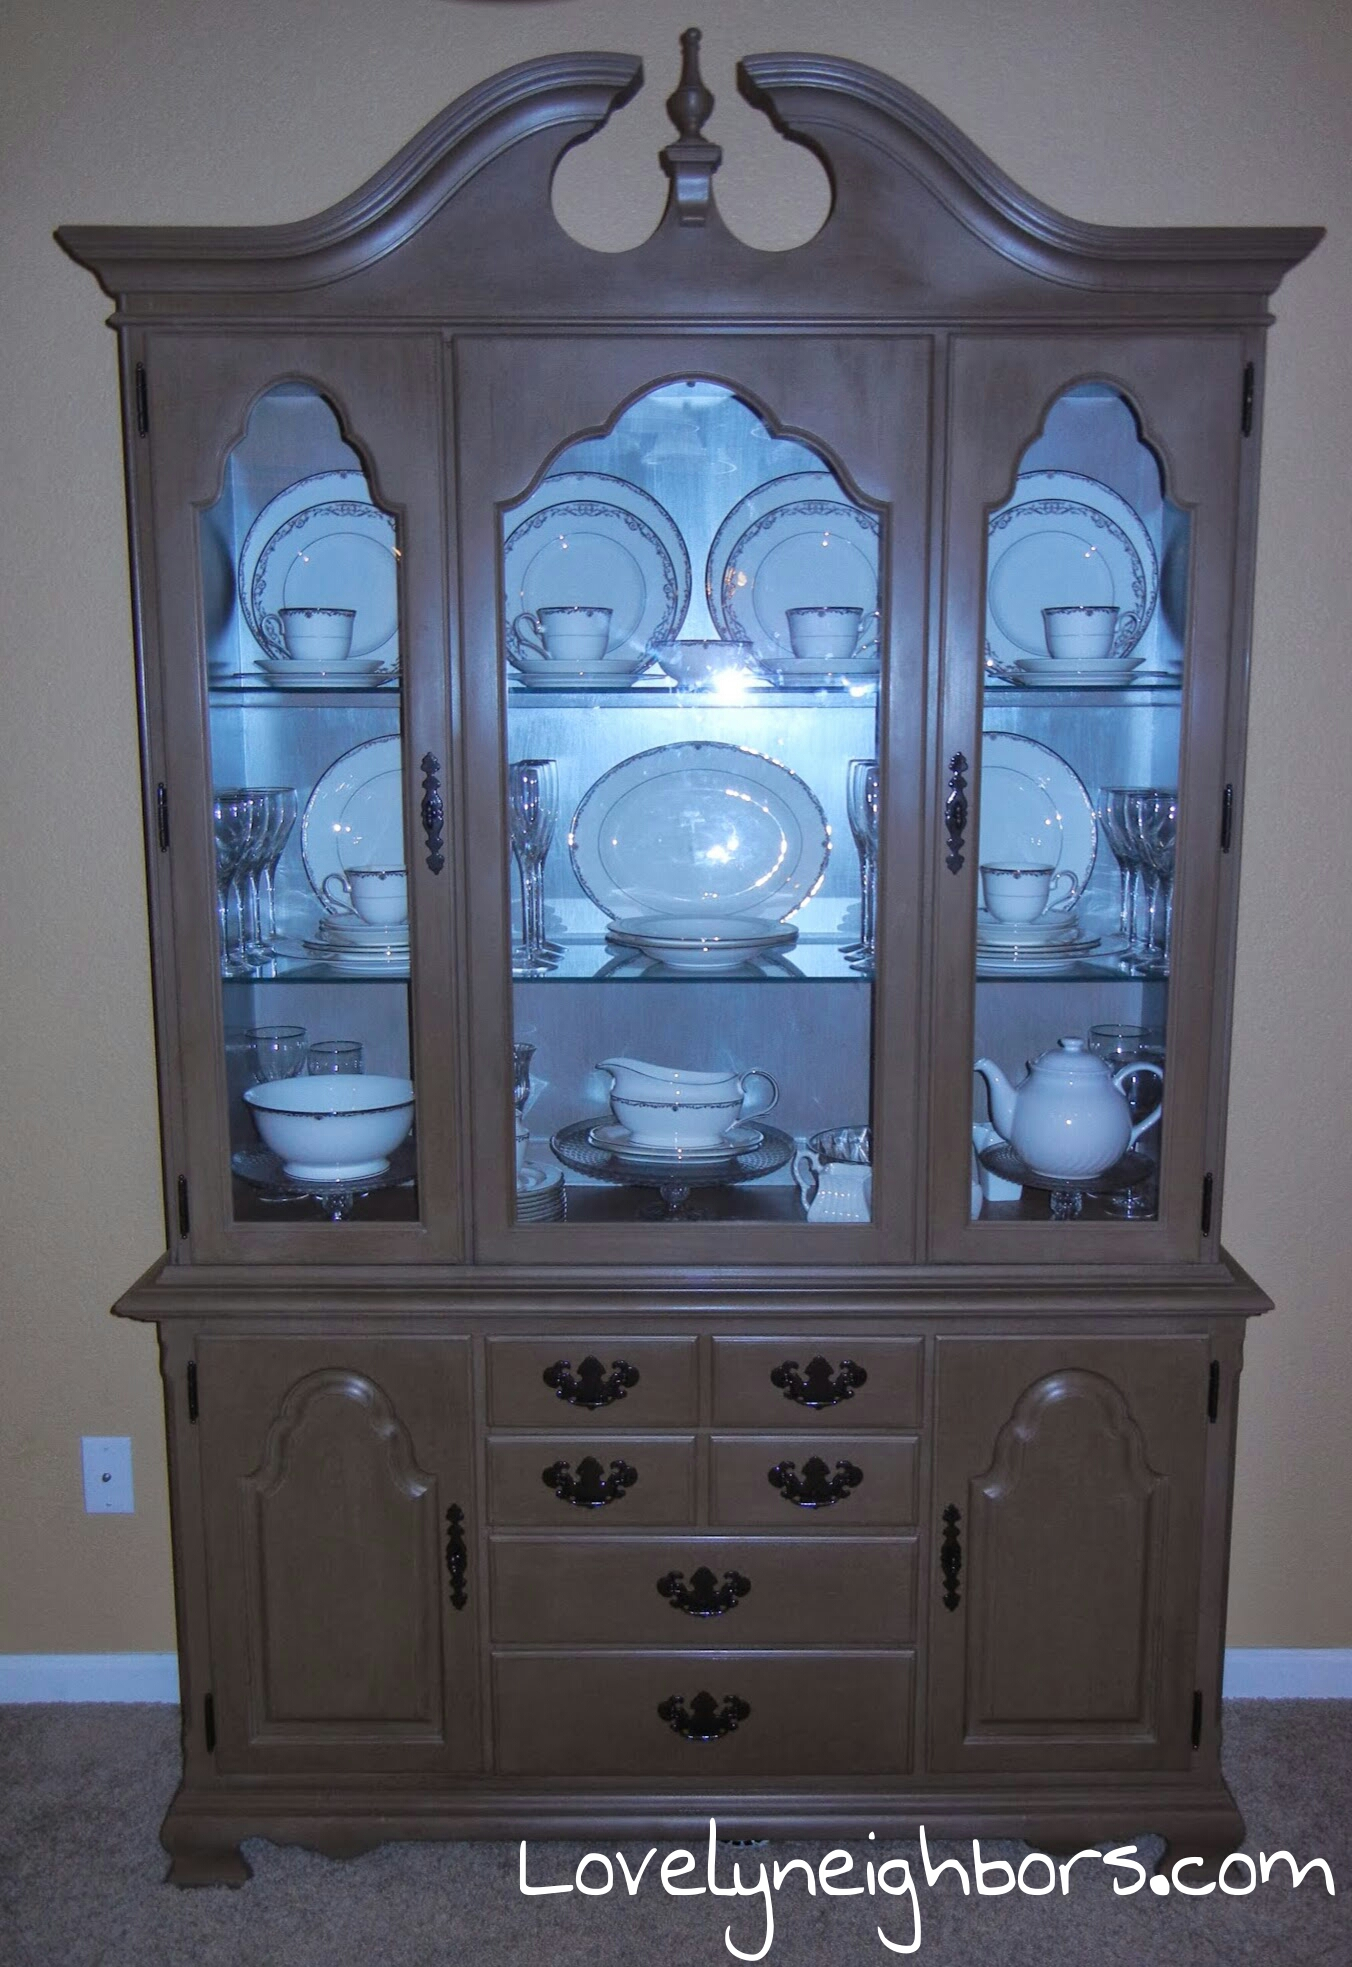 Chalk Painted China Cabinet Lovely Neighbors